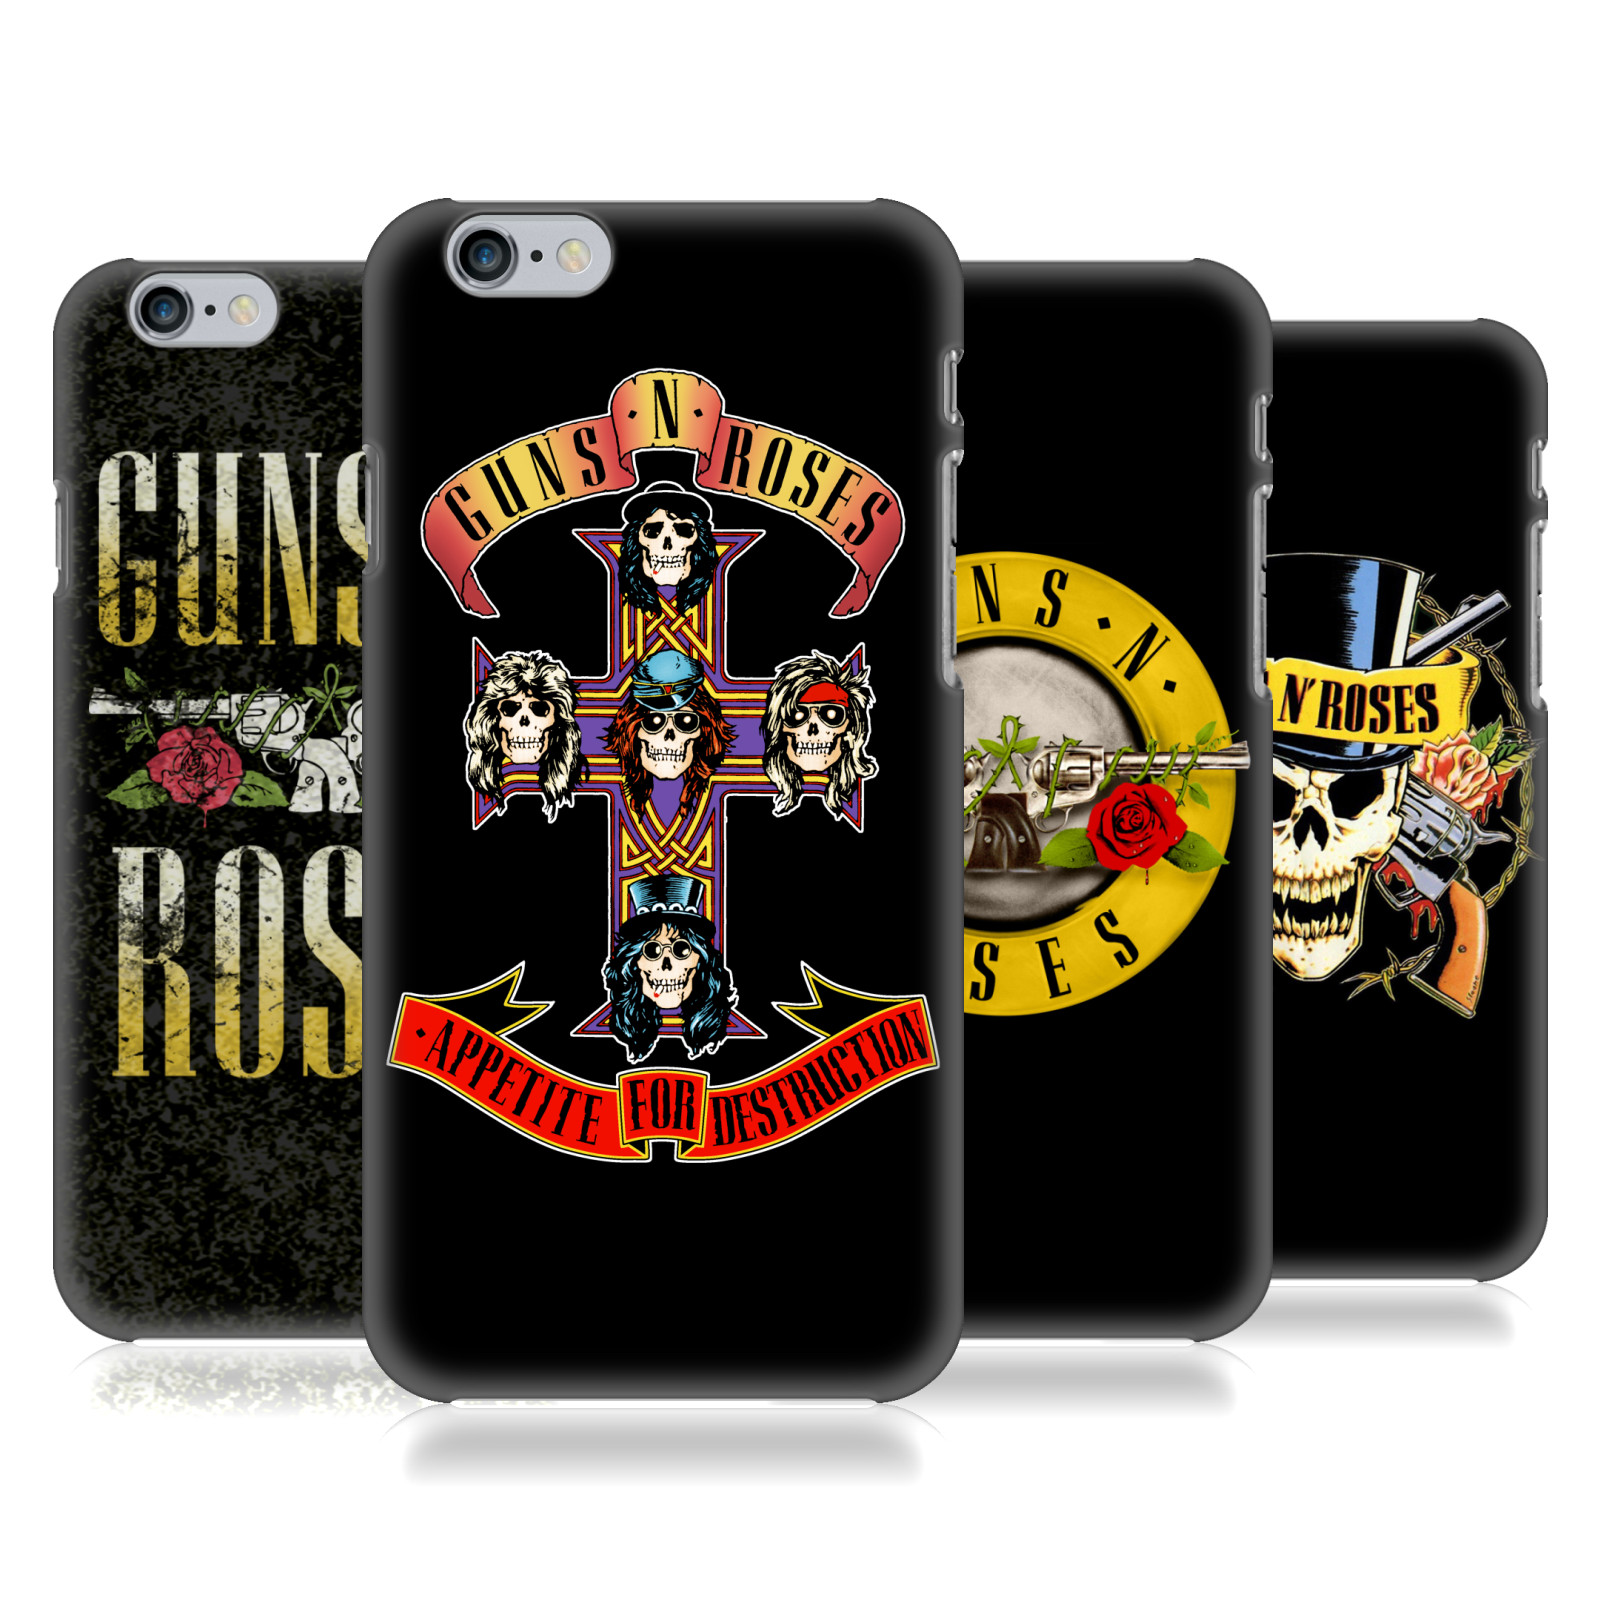 Guns N' Roses Phone and Tablet cases